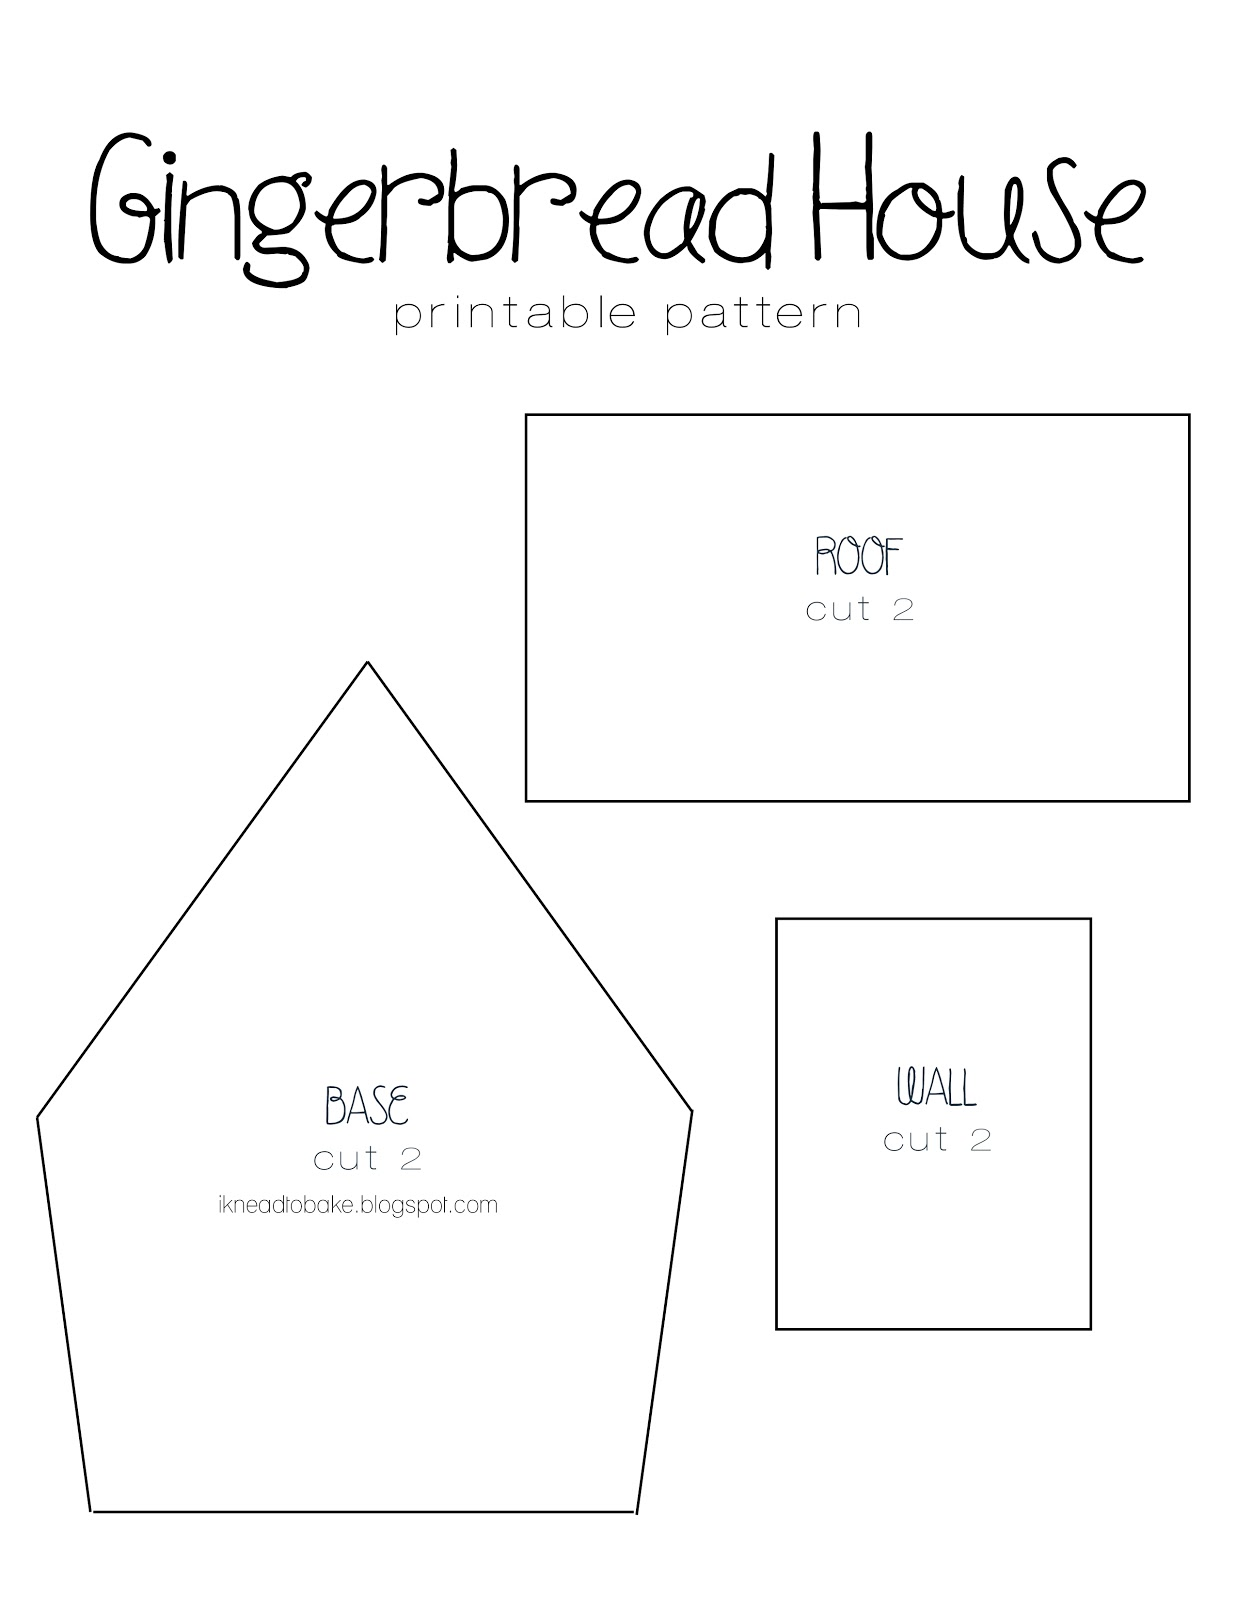 Comprehensive image for gingerbread house templates printable